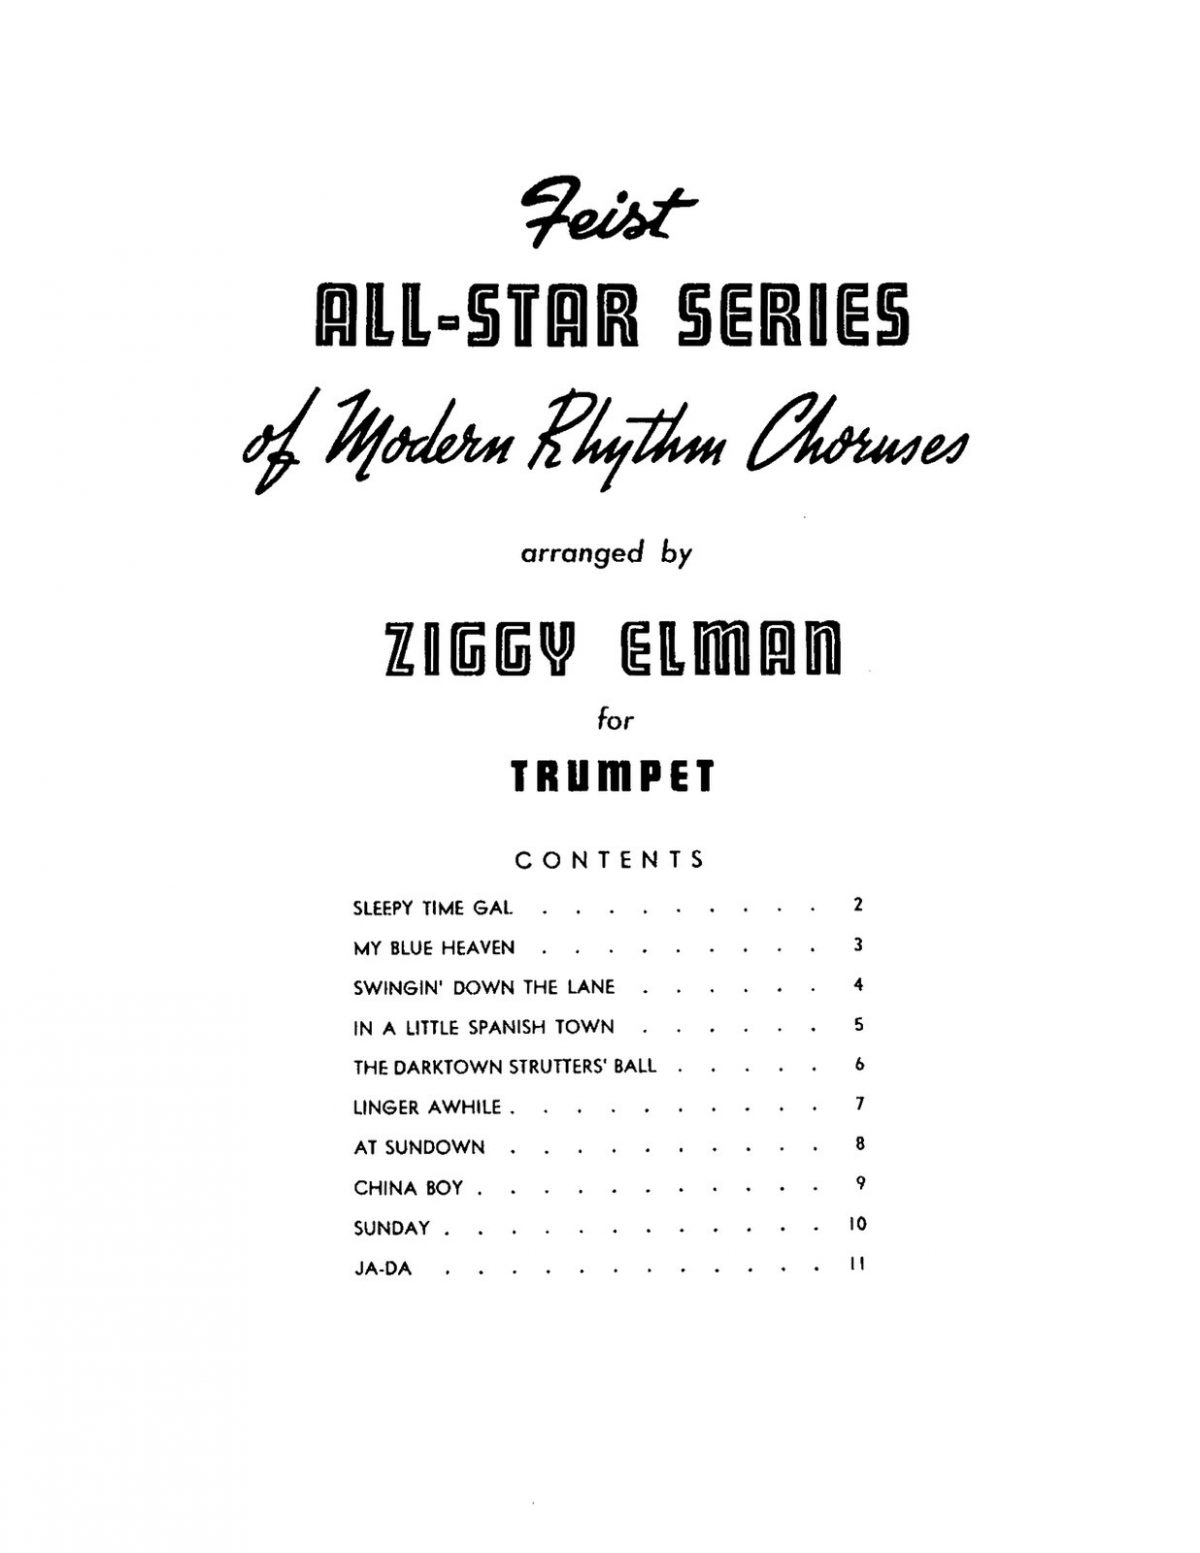 Elman, All Star Series Modern Rhythm Choruses for Trumpet-p03